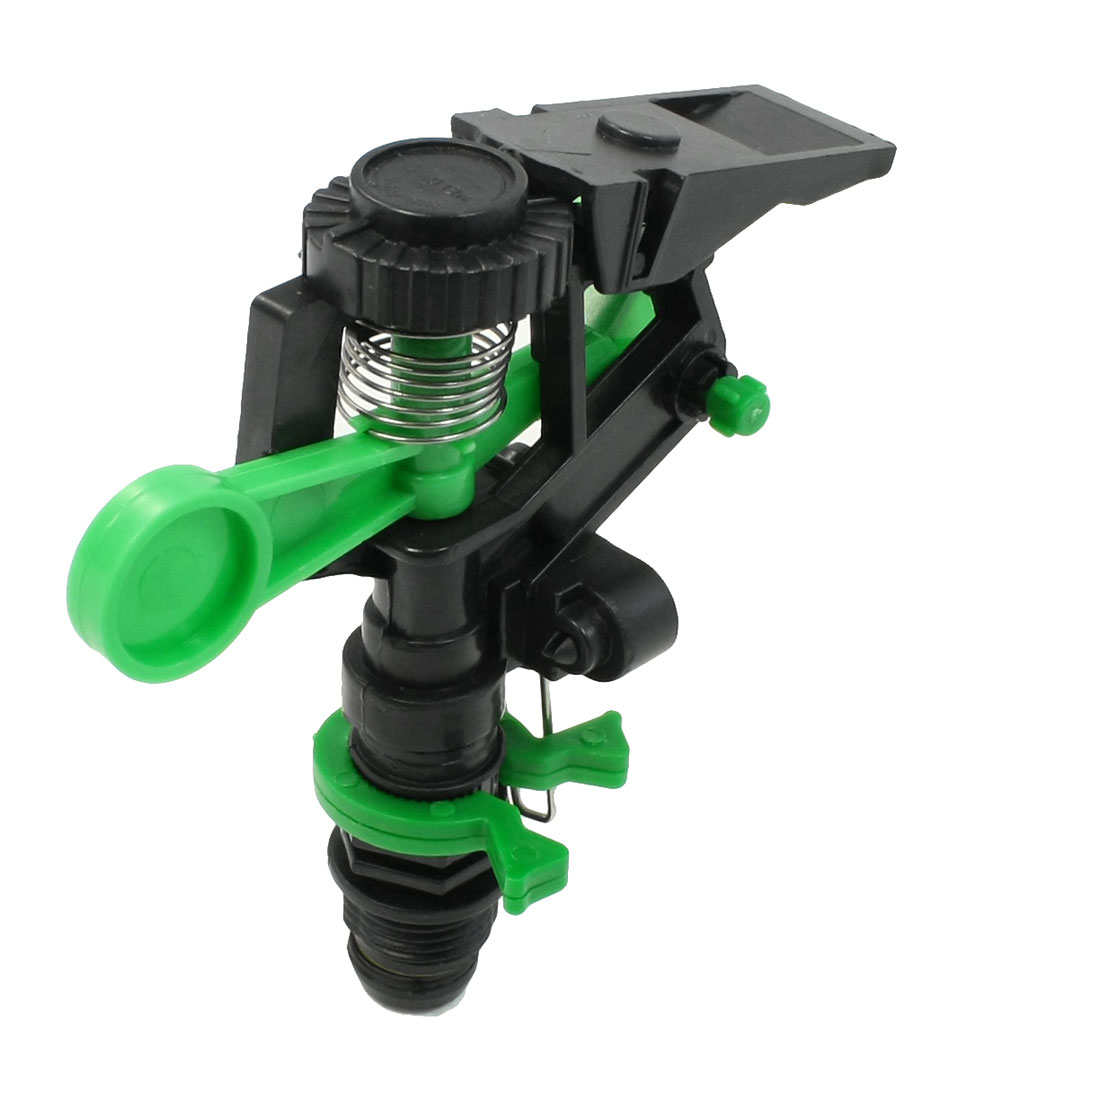 180 Degree Rotary Garden Water Sprinkler Sprayer Head Black Green